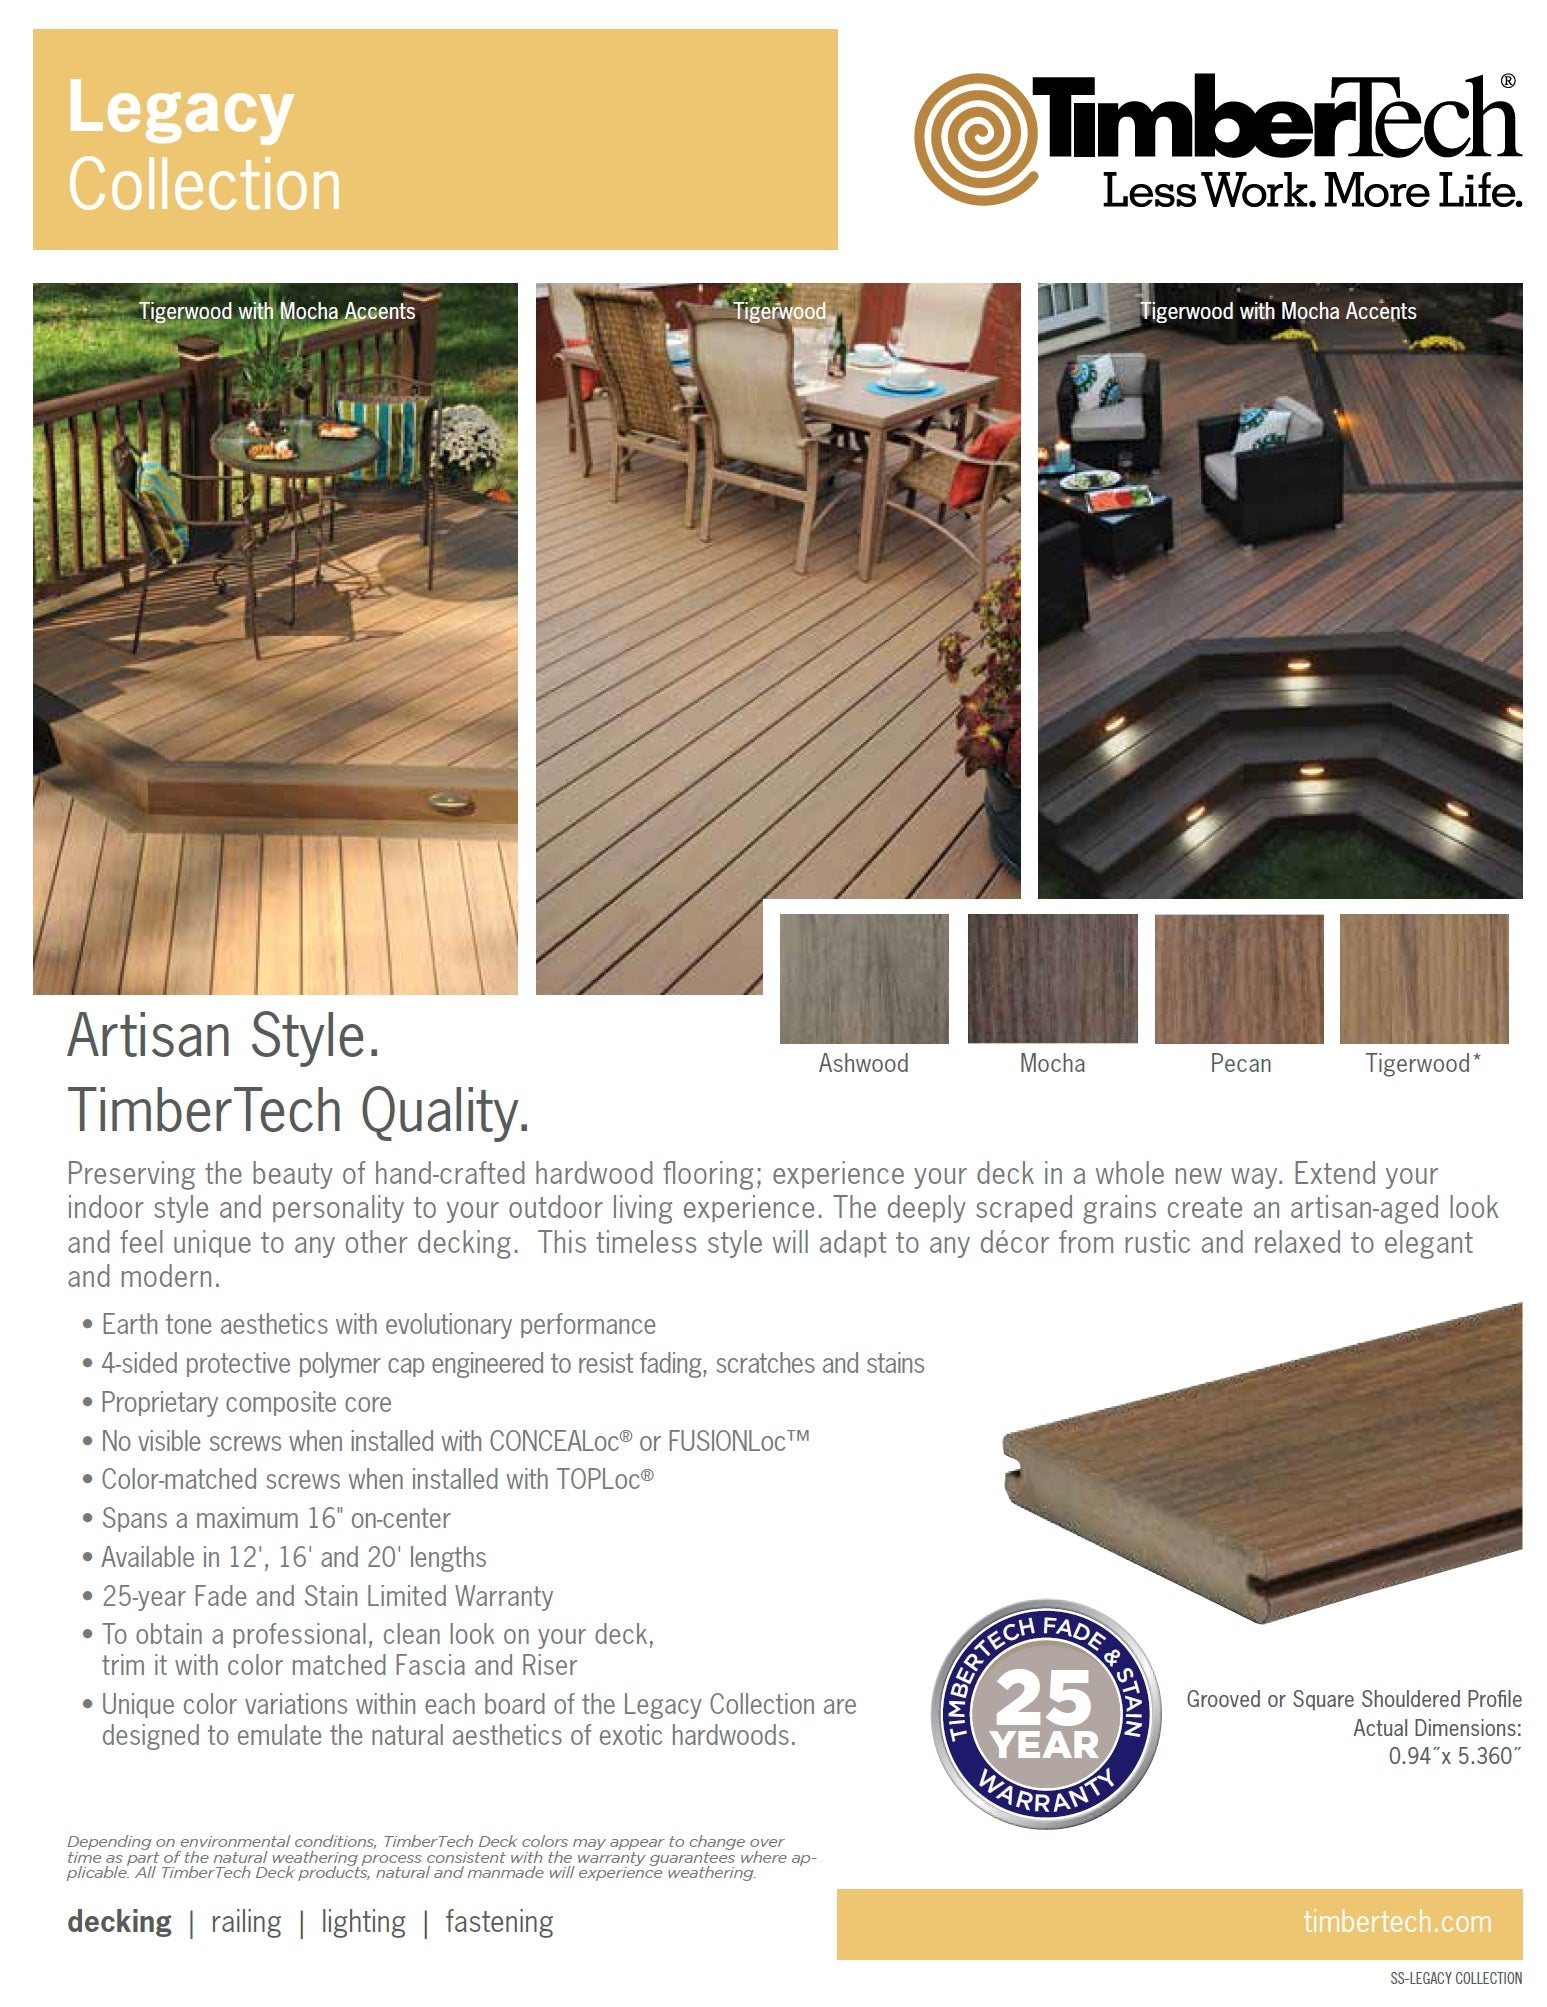 Timbertech legacy capped composite decking pro deck for Capped composite decking prices